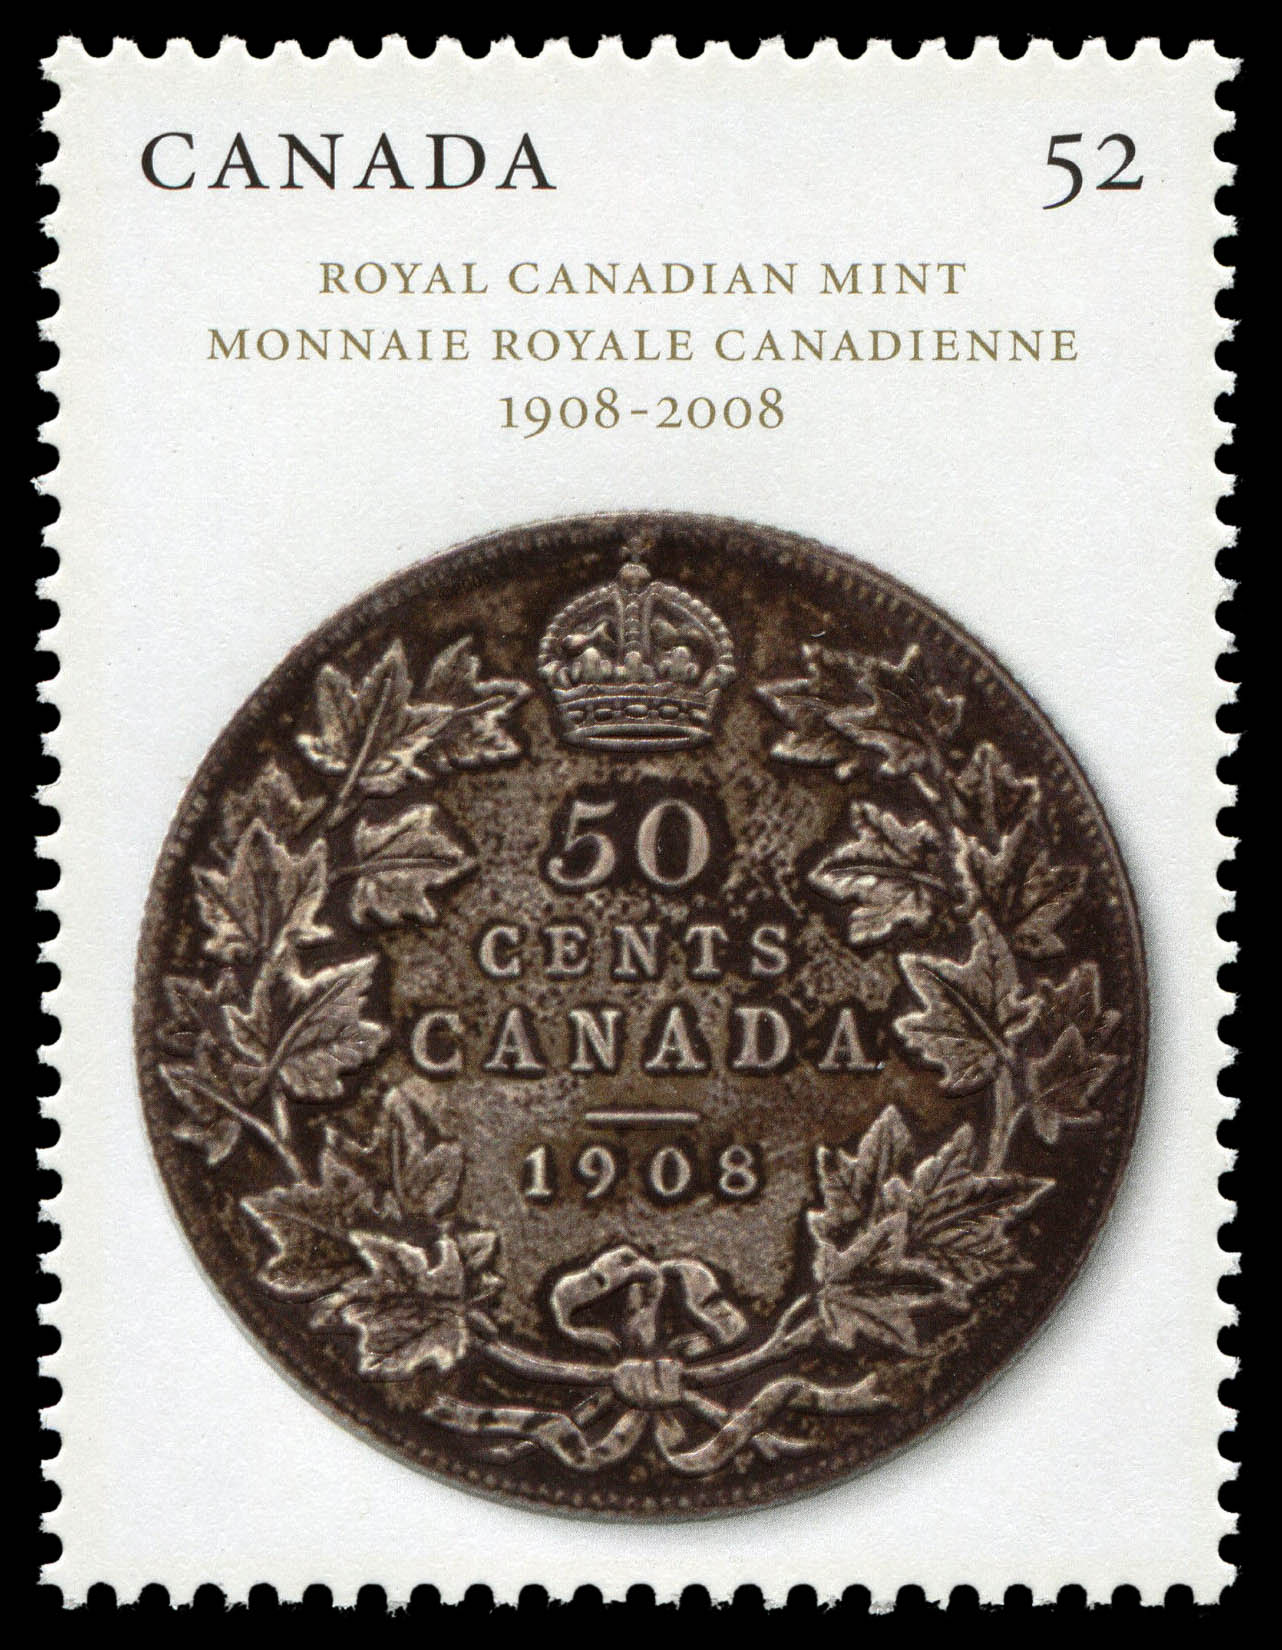 Royal Canadian Mint - 1908-2008 Canada Postage Stamp